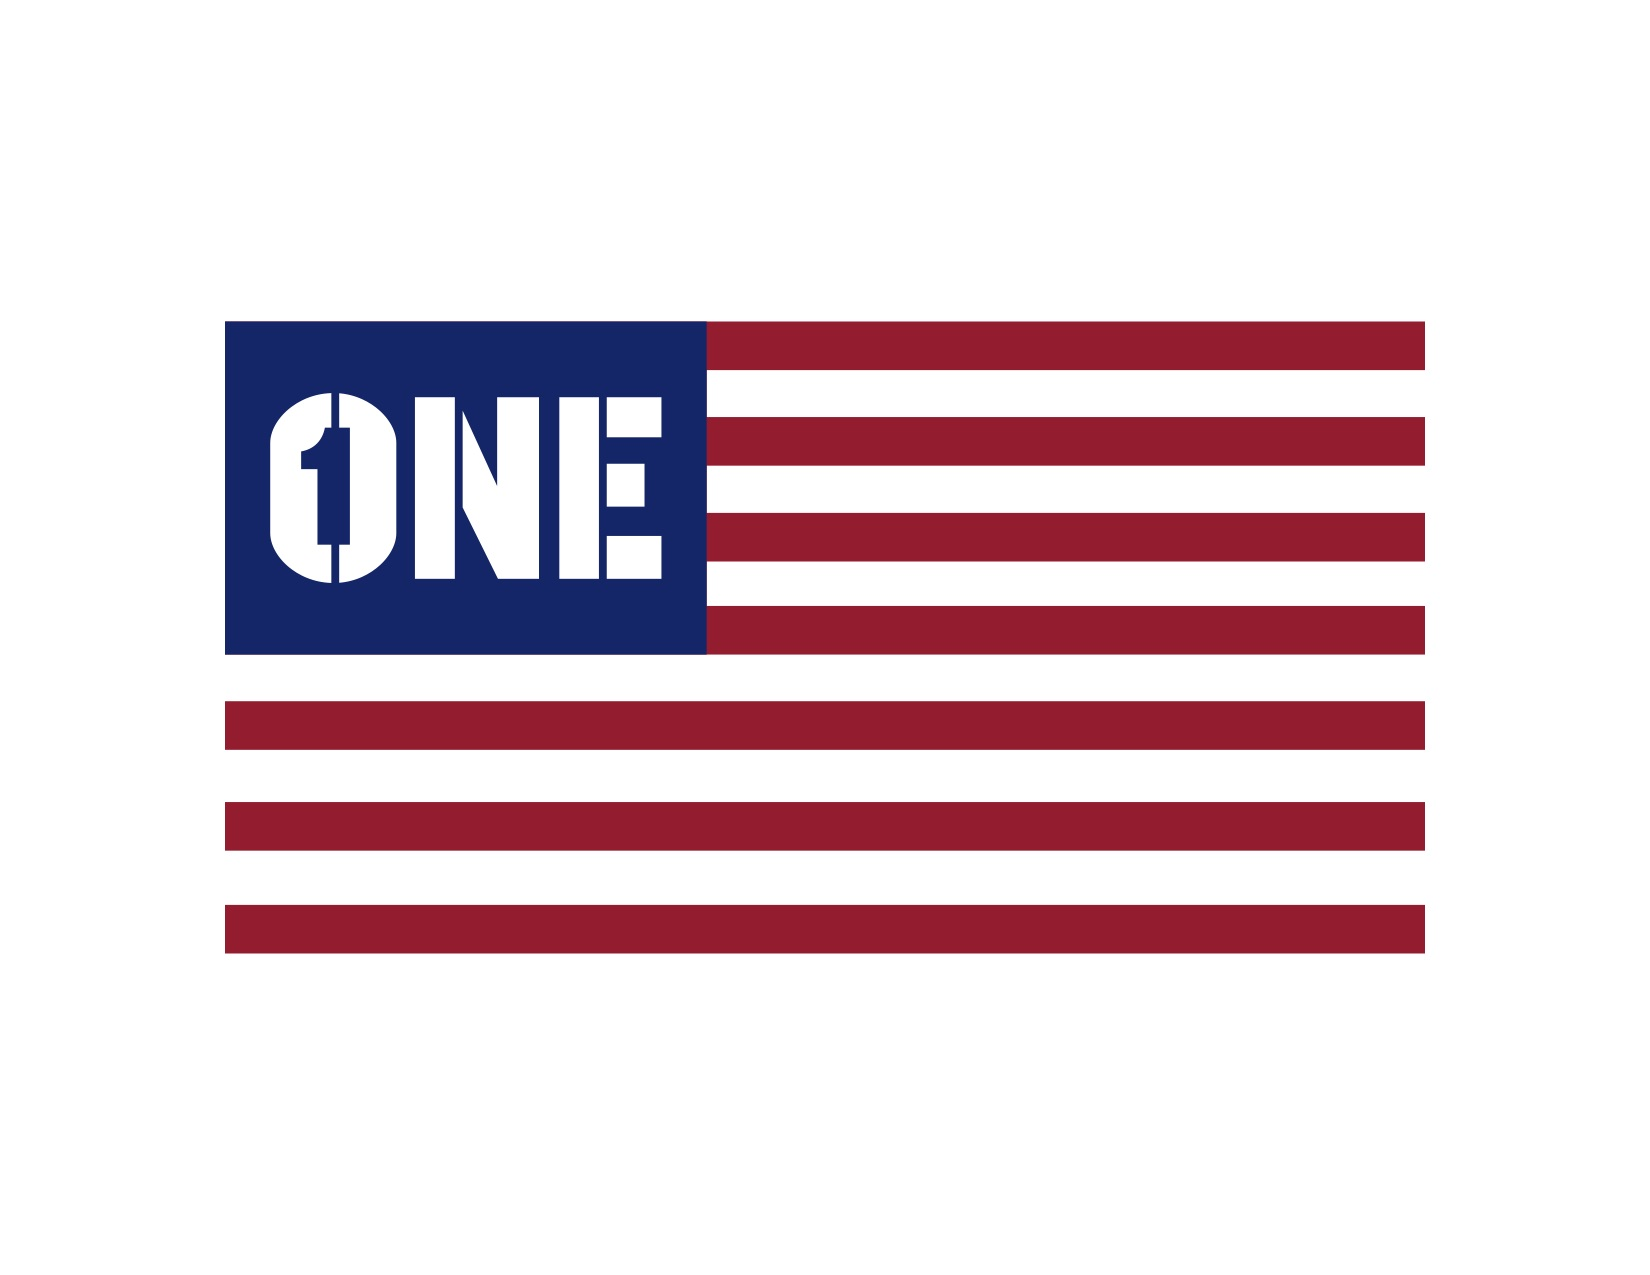 CrossFit ONE Nation